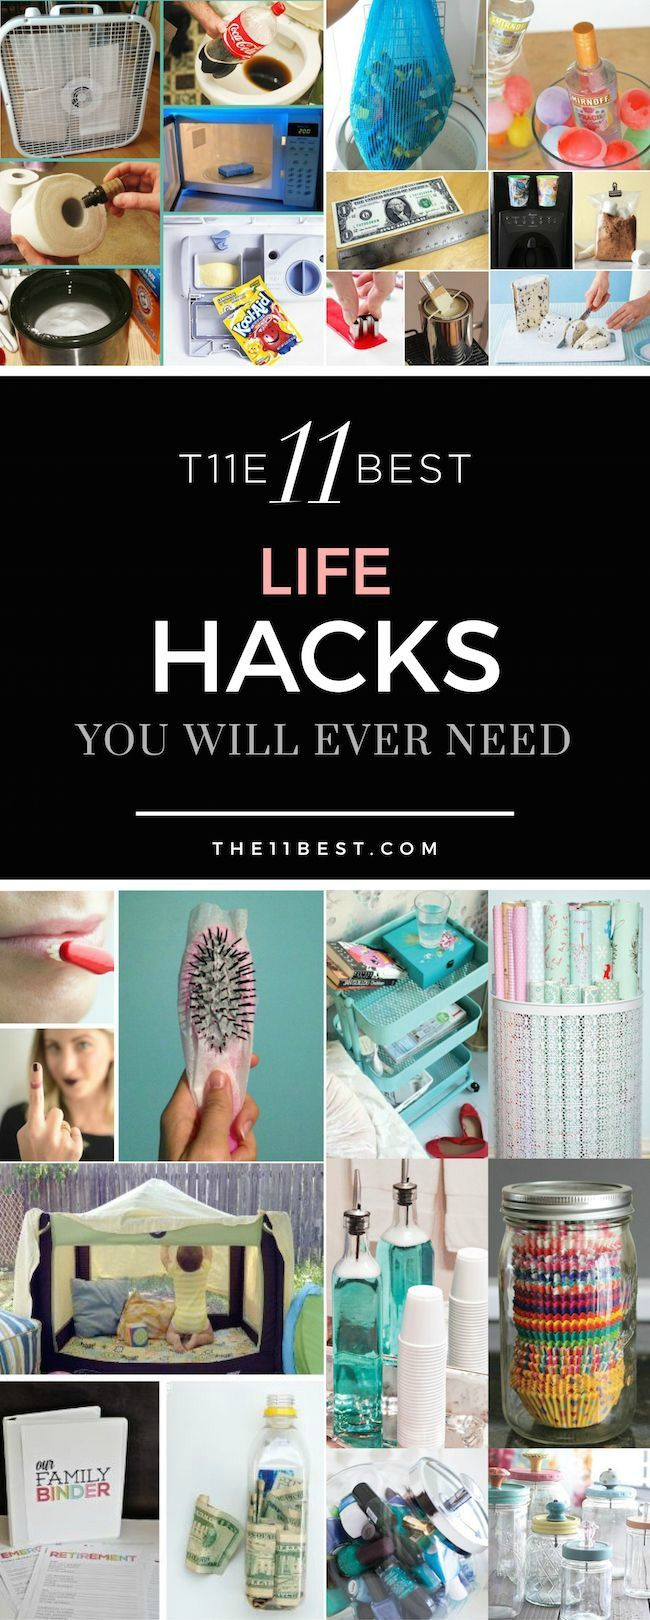 best 20 best life hacks ideas on pinterest useful life hacks diy cleaning cloths and remove. Black Bedroom Furniture Sets. Home Design Ideas